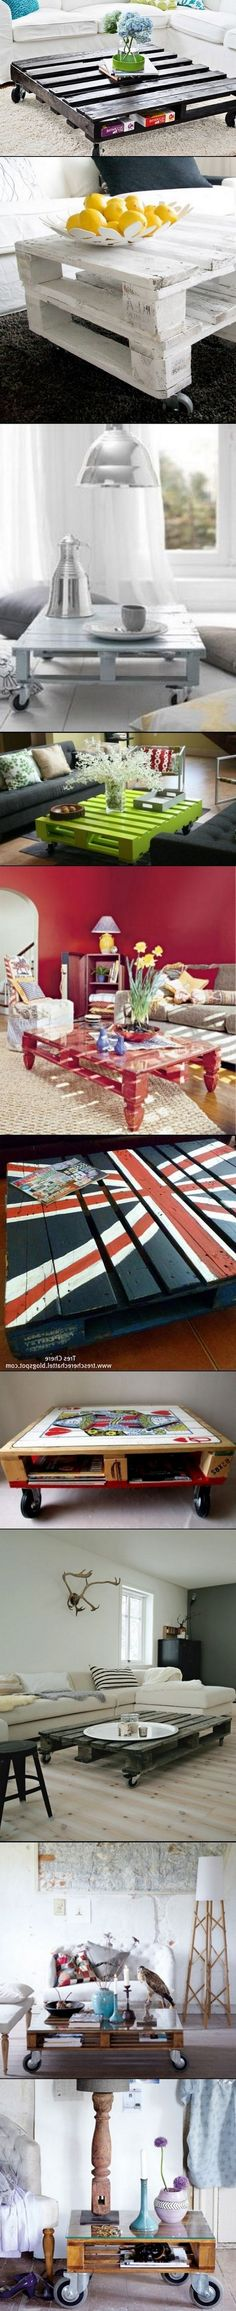 DIY Home decor Tables. Great for patio and decks